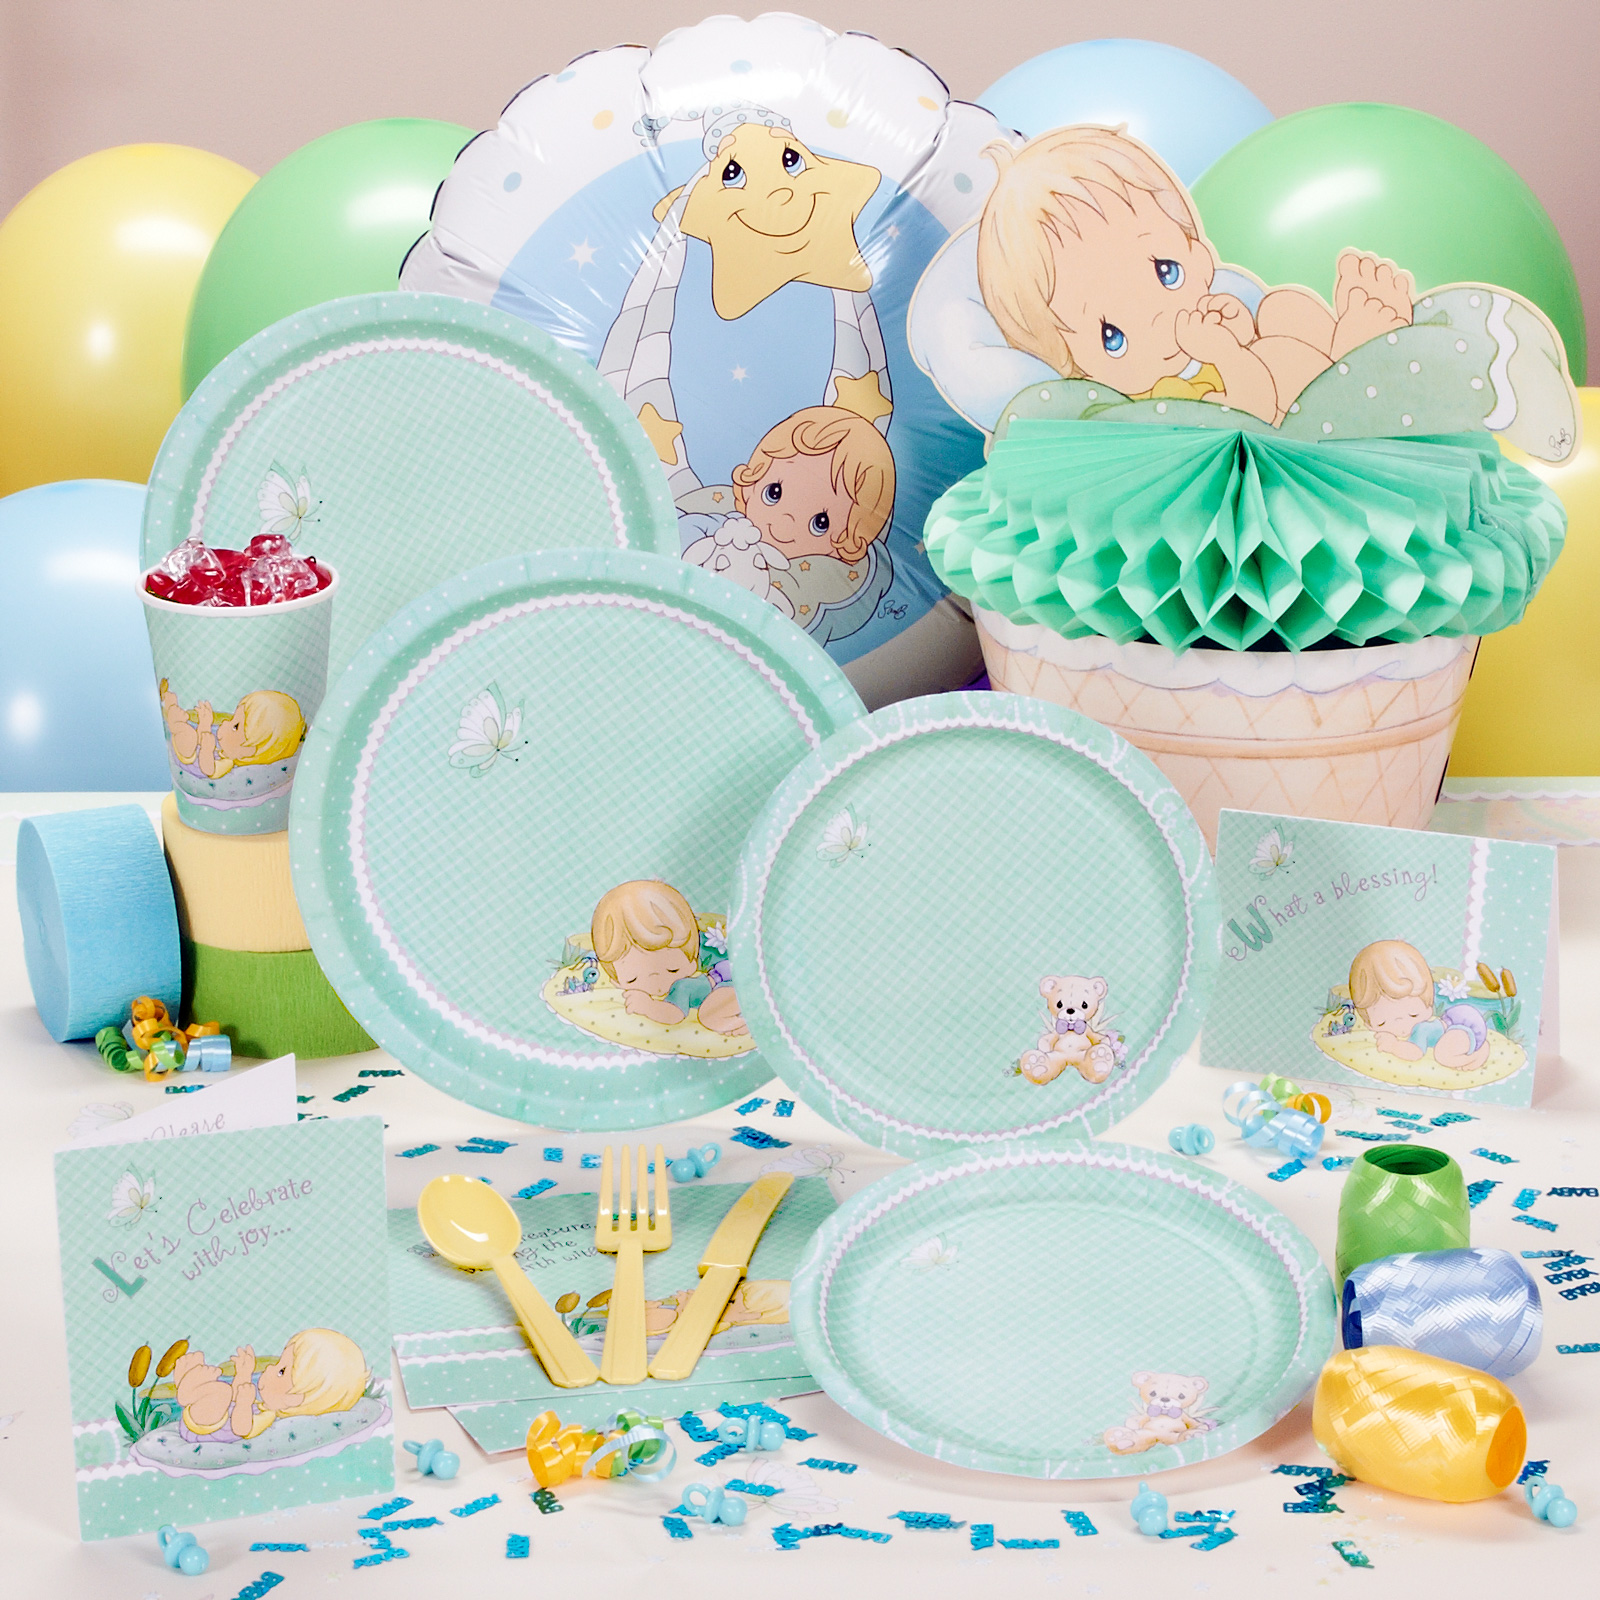 Precious Moments Baby Shower Party Supplies: Pin Precious Moments Baby Shower Cake Pic 19 Cake On Pinterest